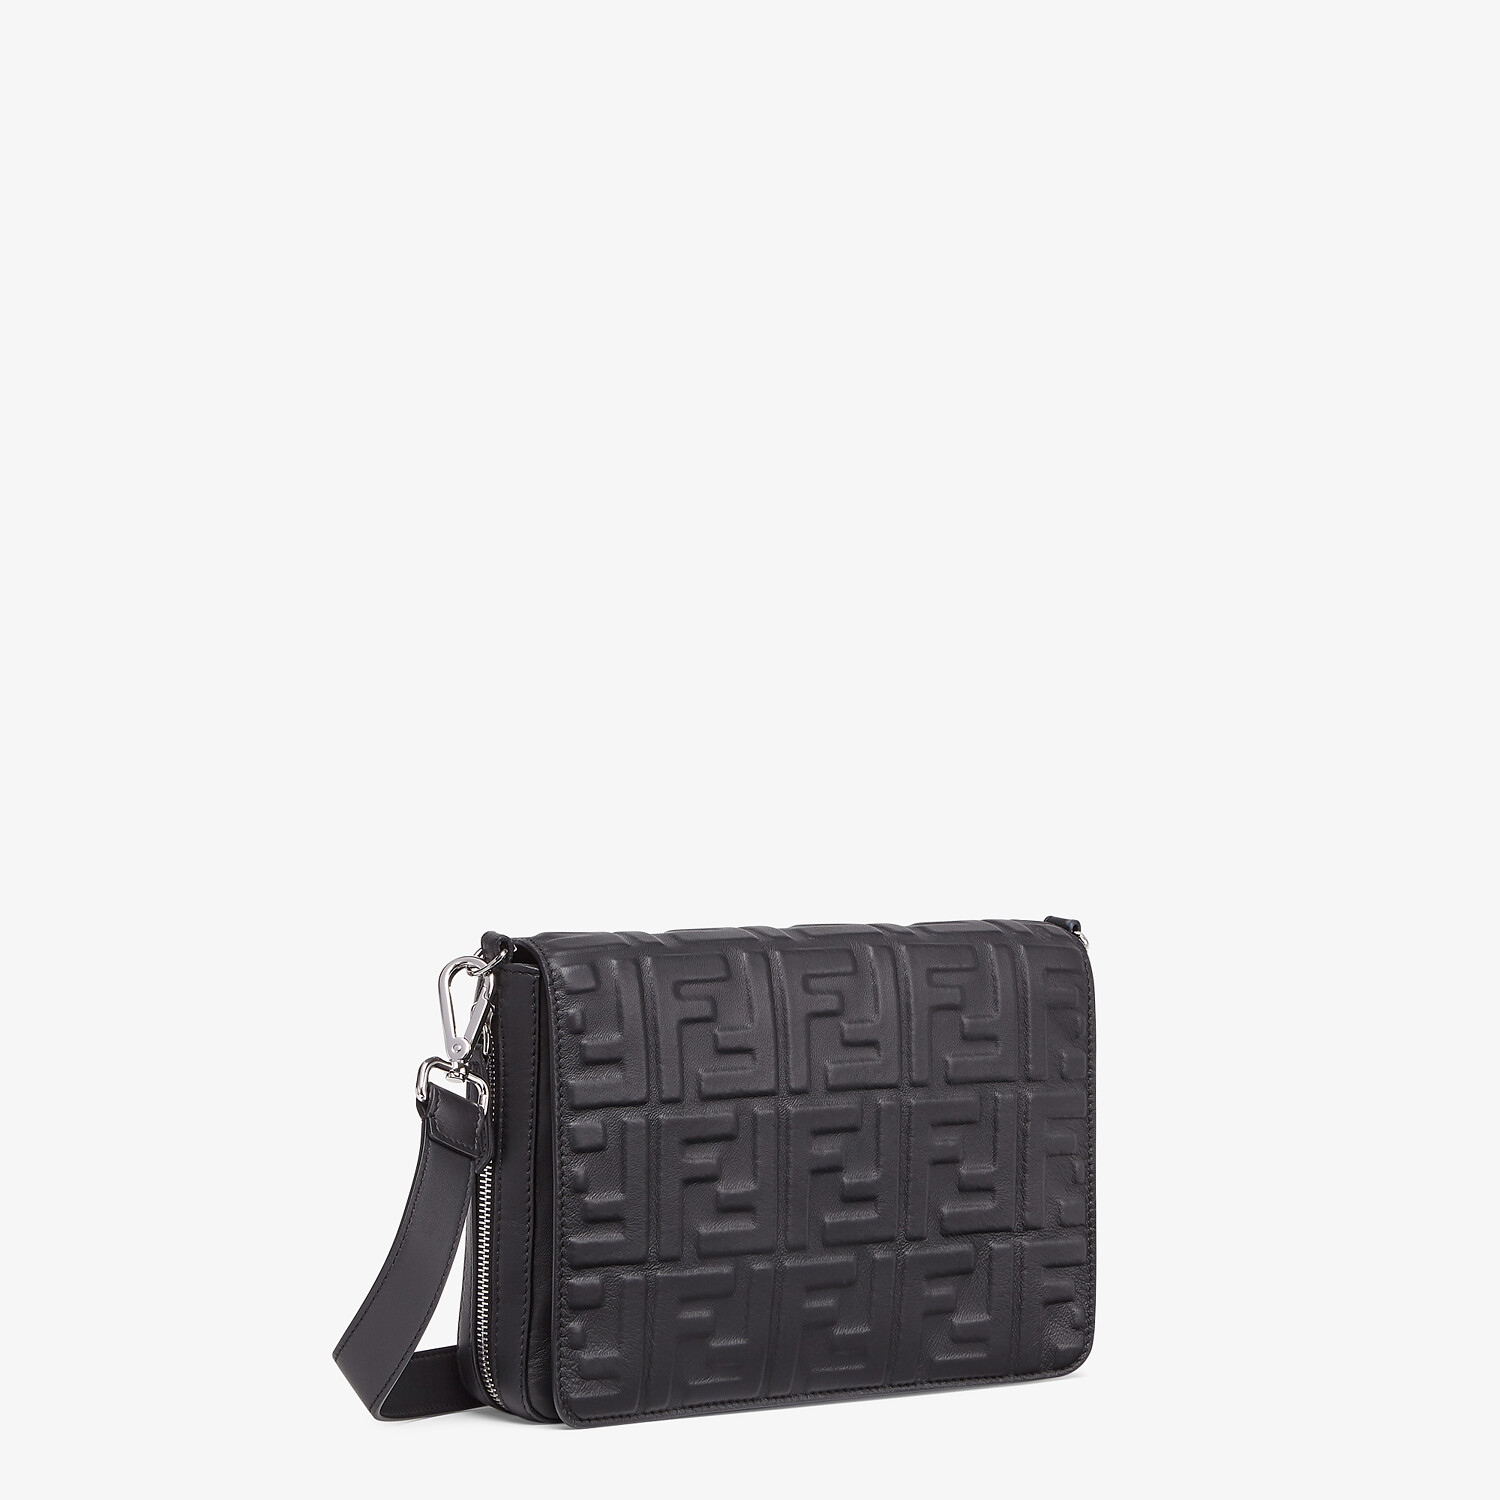 FENDI MESSENGER - Black nappa leather bag - view 2 detail